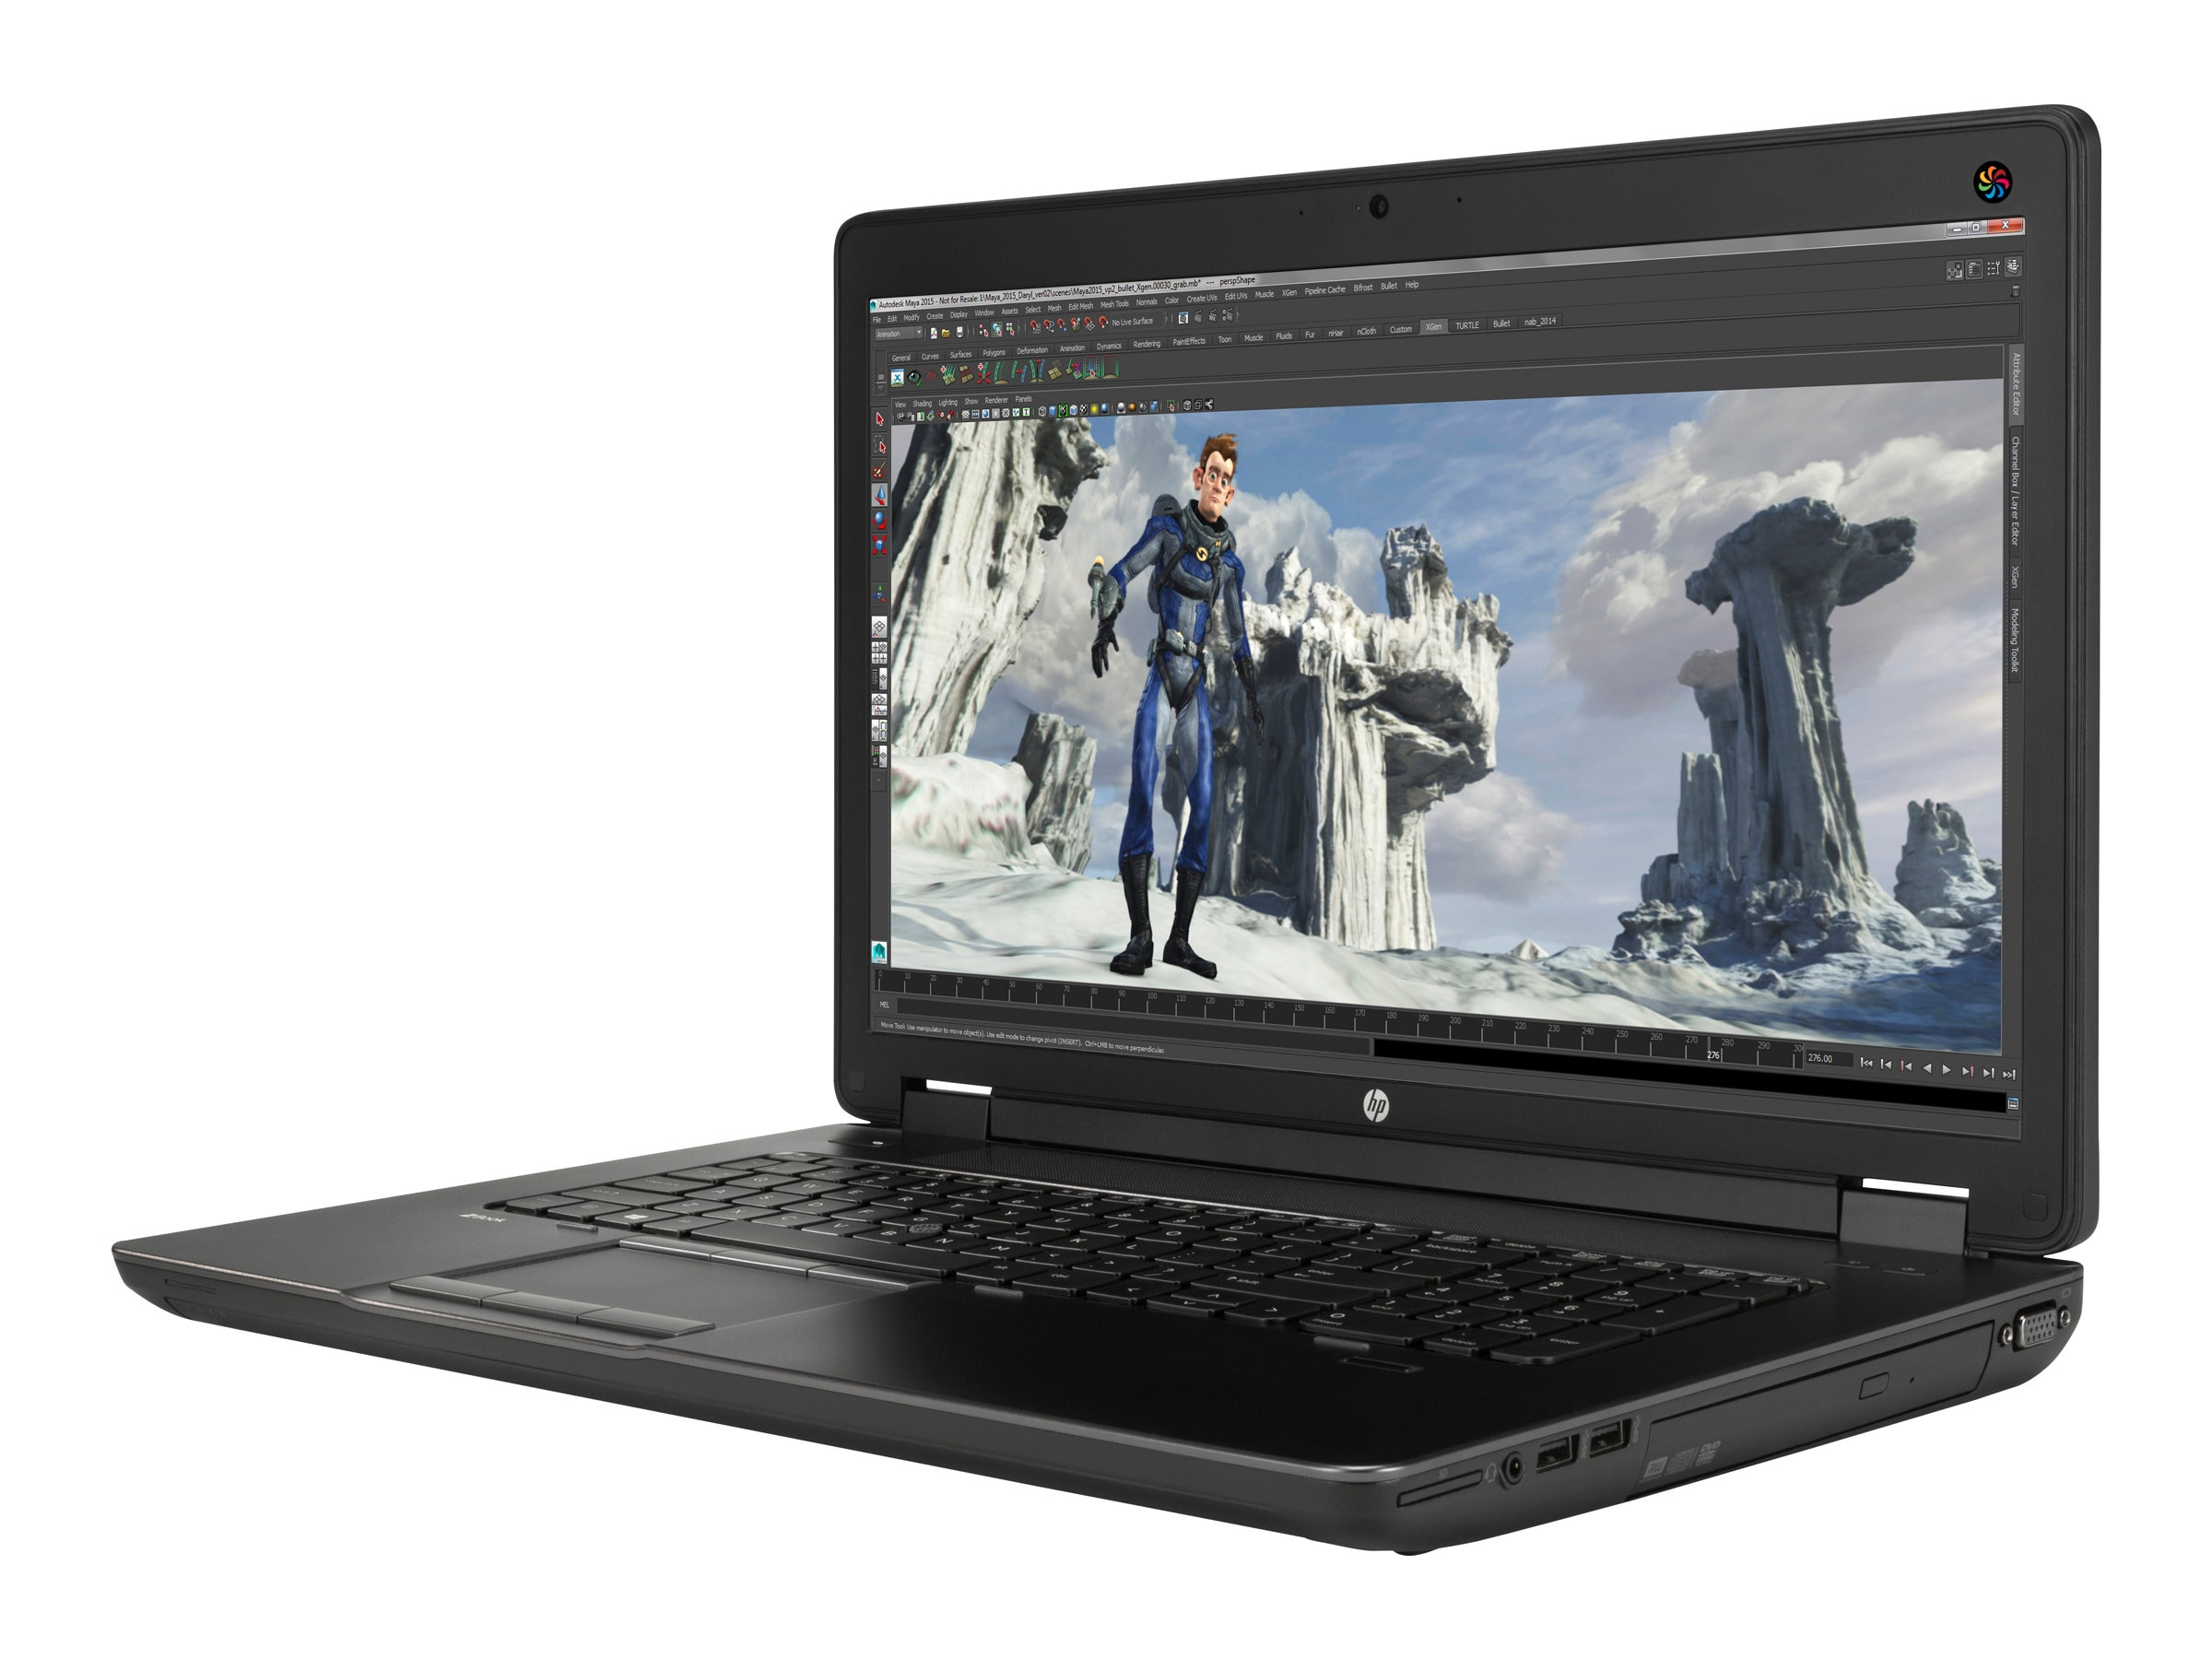 HP ZBook 15 Core i7-4810MQ 2.8GHz 32GB 750GB DVD+RW BT 15.6 W7P, N0N24US#ABA, 20016819, Workstations - Mobile